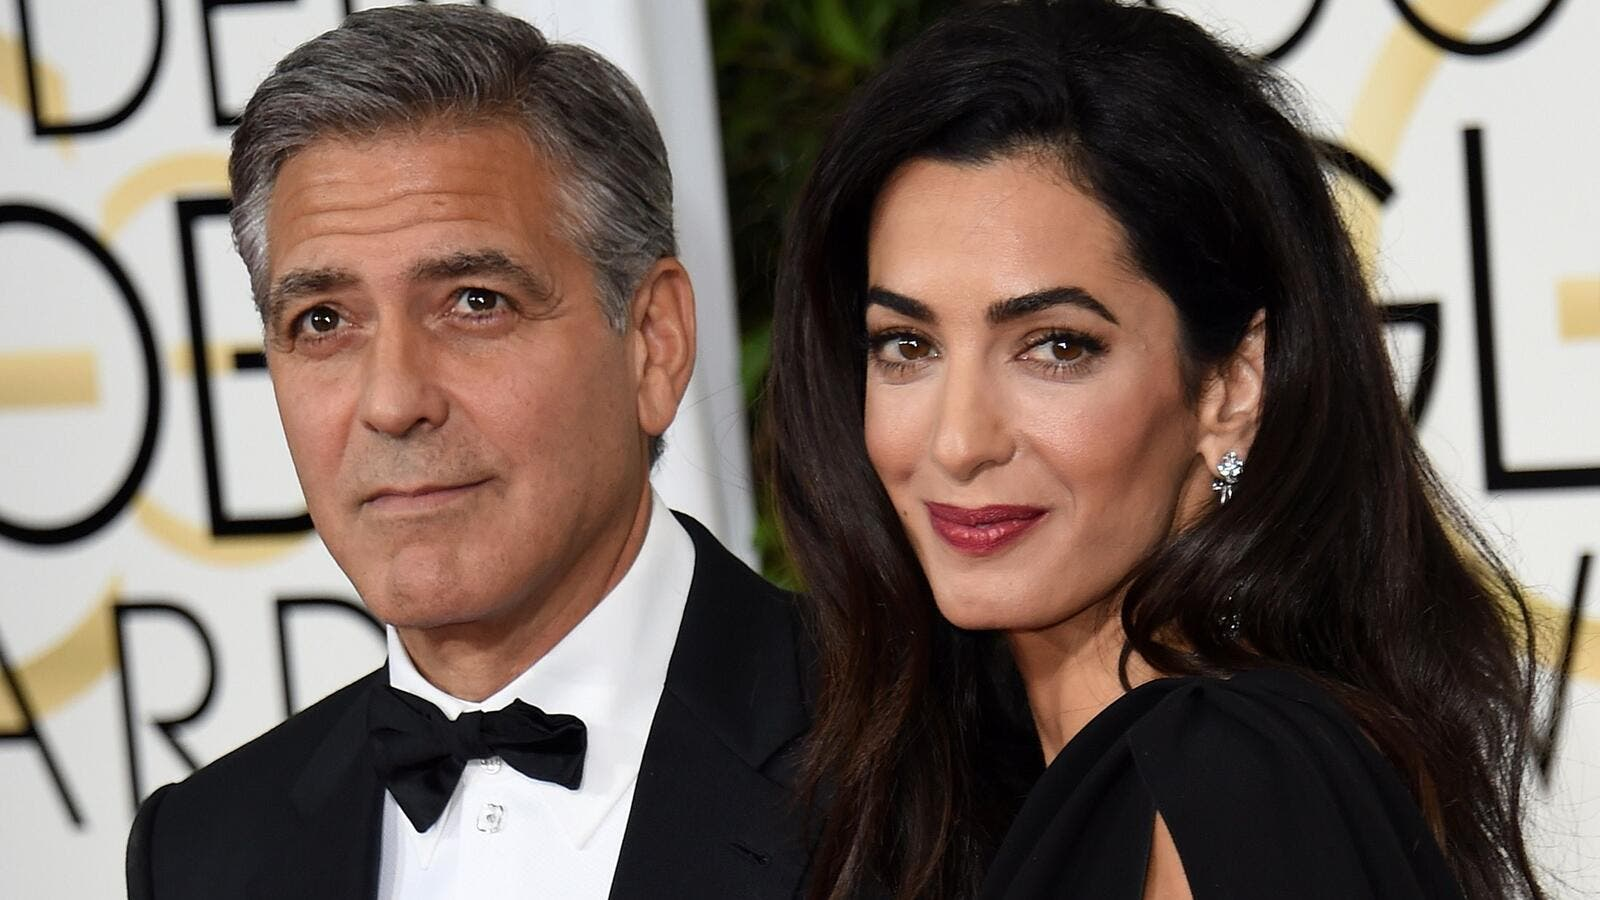 George bought Amal their UK mansion after tying the knot in 2014. (File photo)